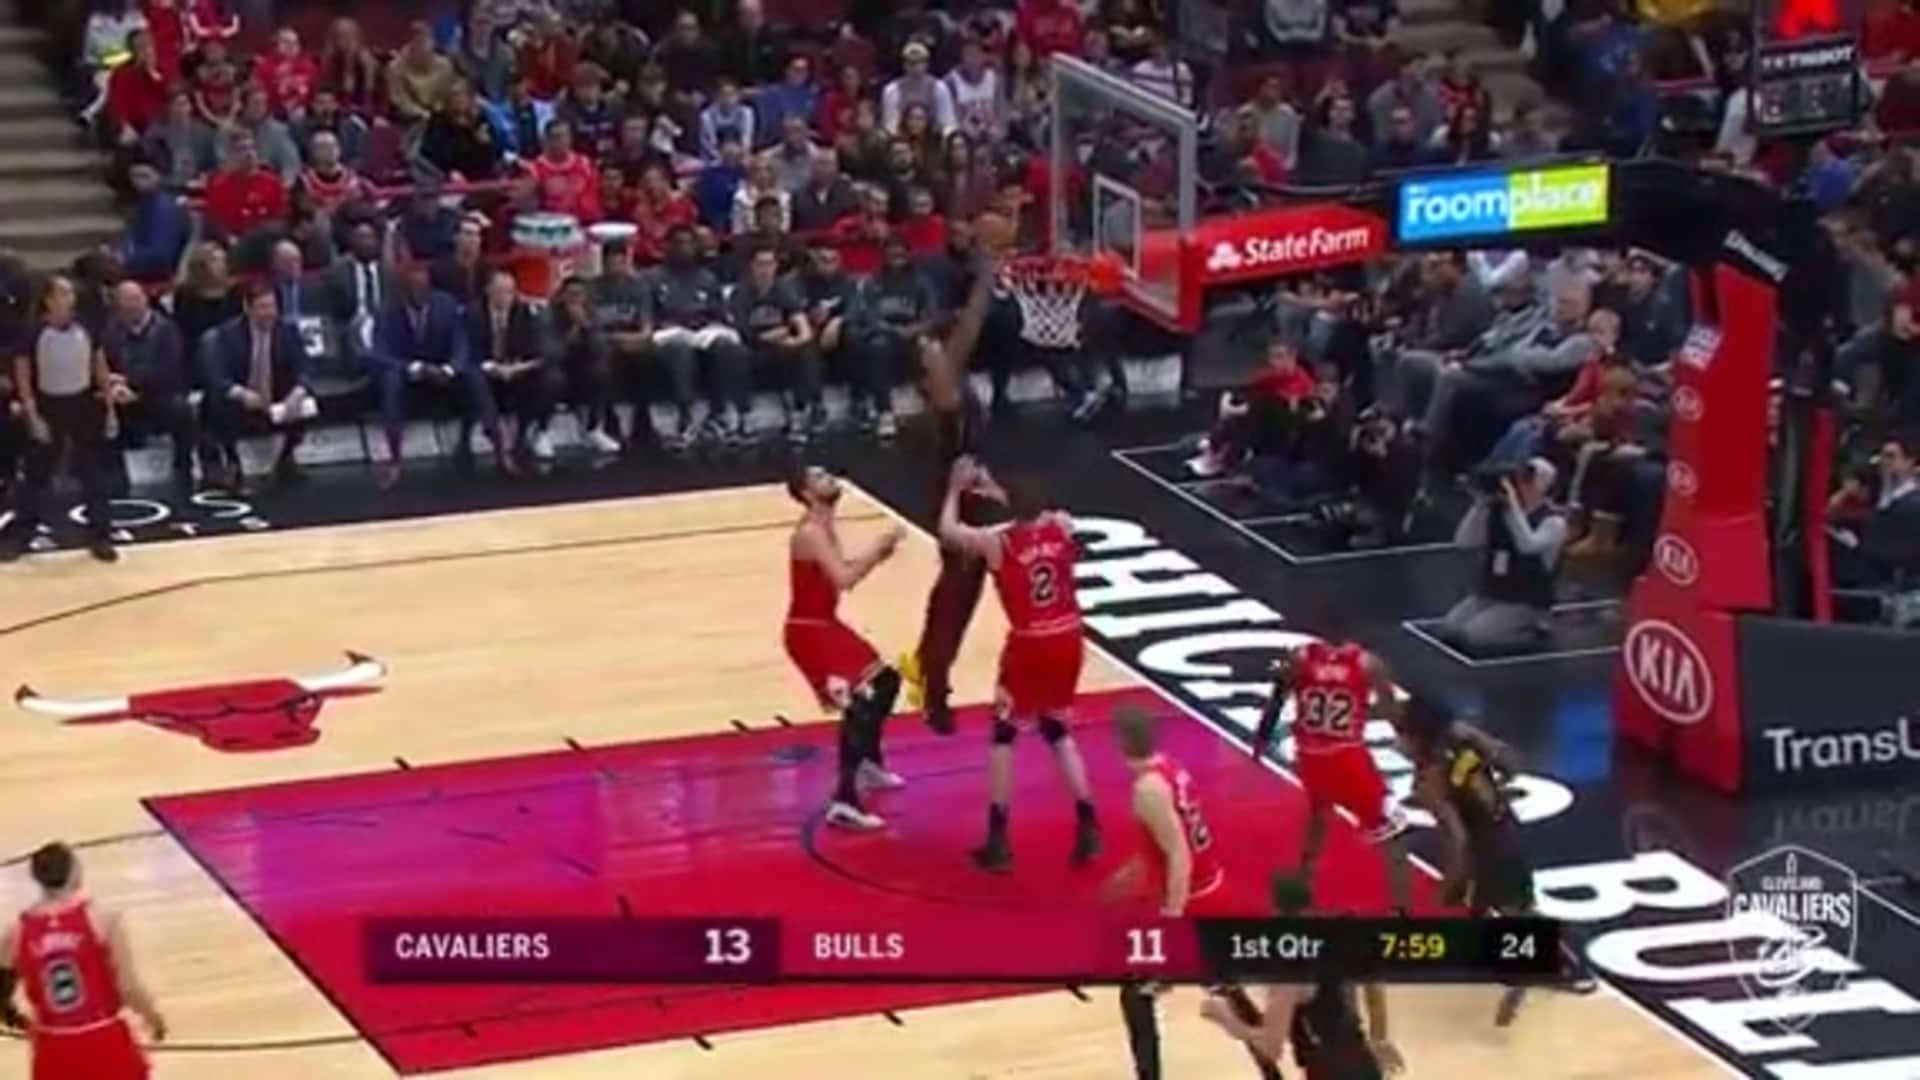 Featured Highlight: TT's Putback Slam